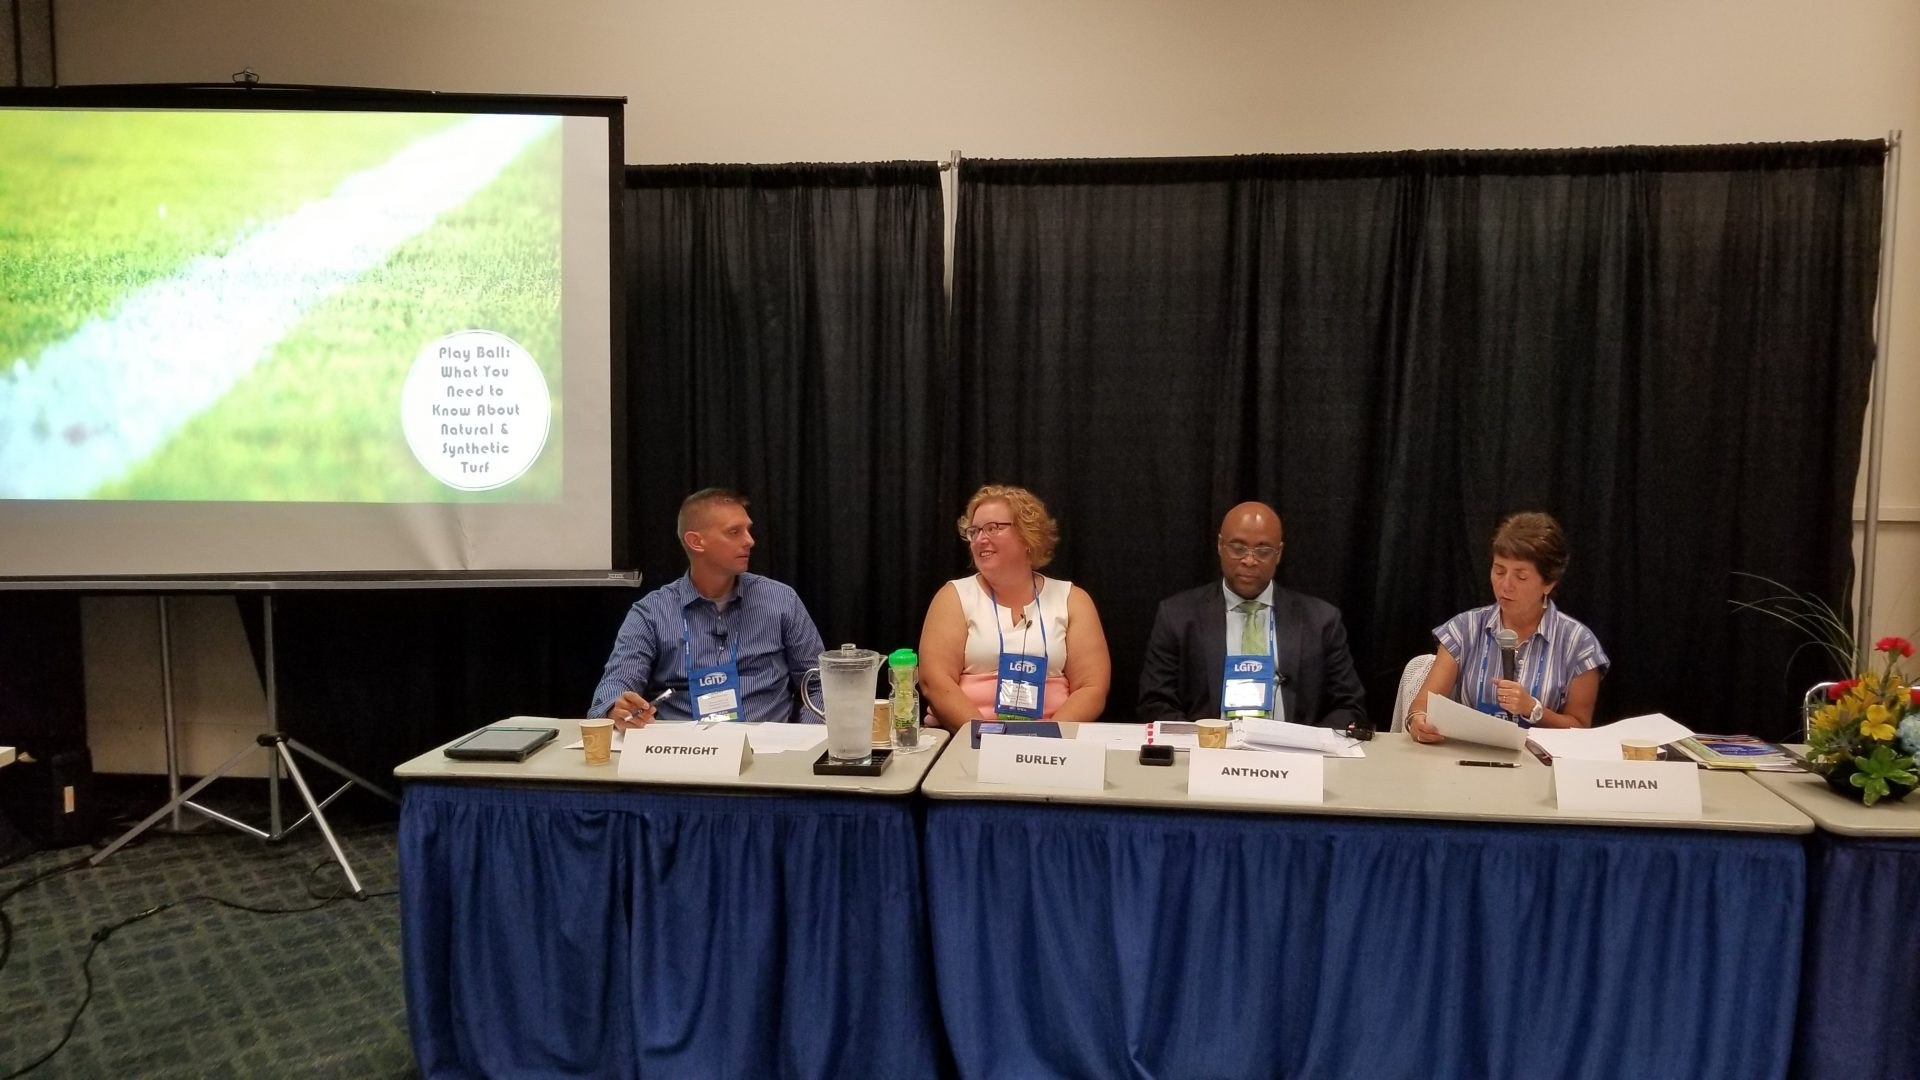 Getting Educated on Natural Grass & Synthetic Turf at 2019 Summer #MACoCon